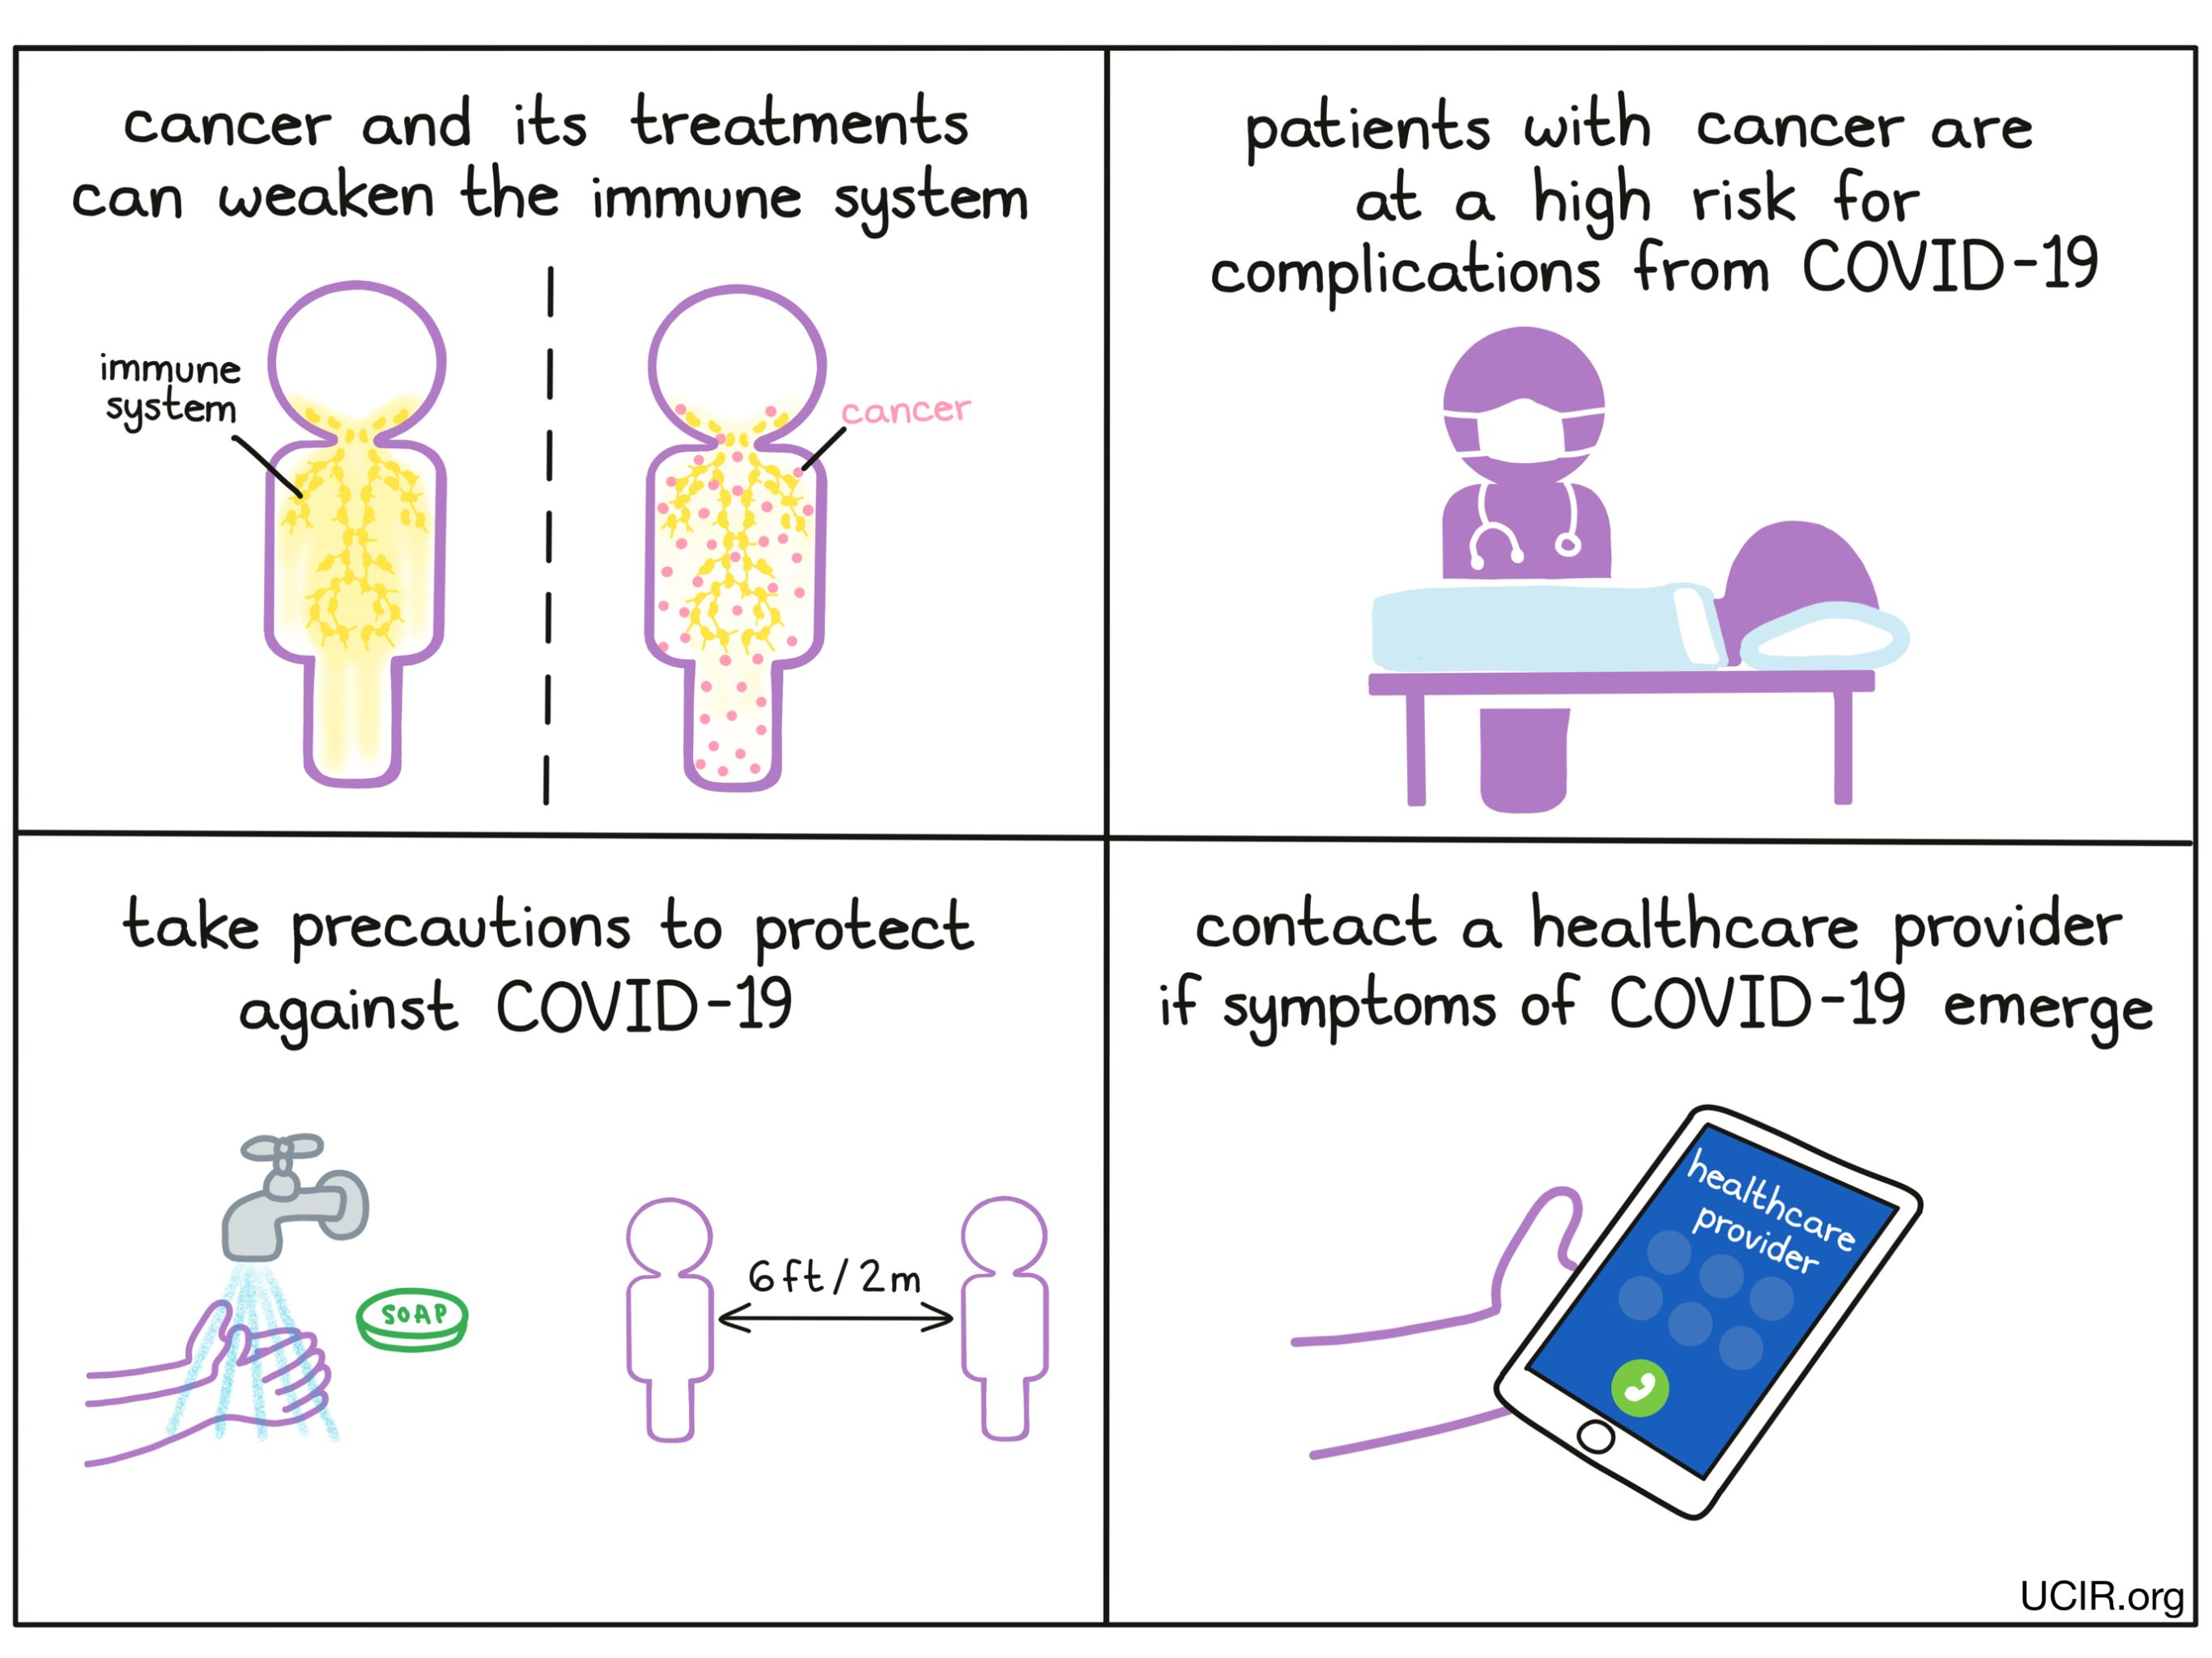 COVID-19: Implications and Guidance for Patients Treated with Immunotherapy